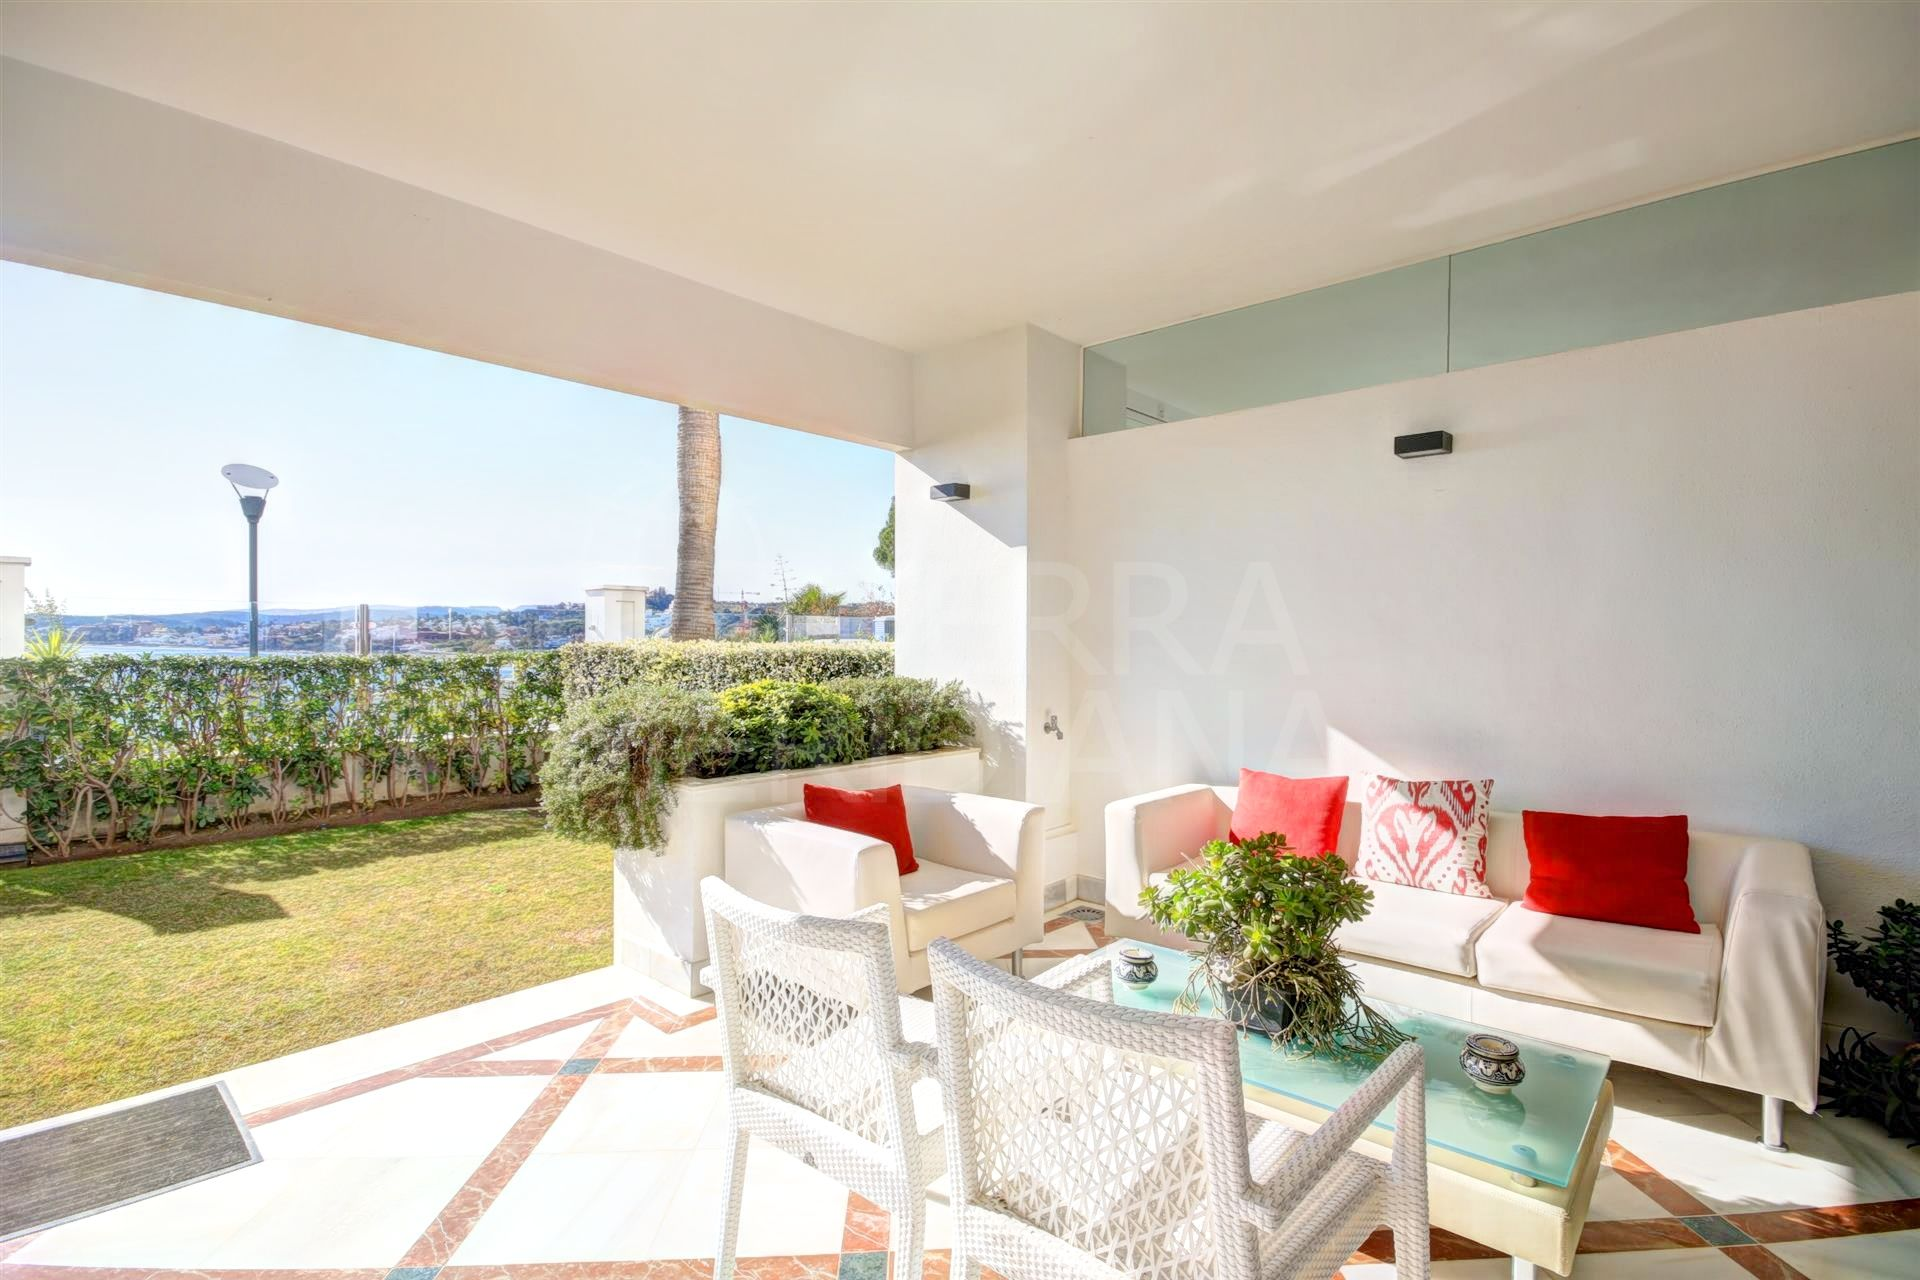 2 bedroom ground floor apartment with open sea views for sale in an exclusive development in Doncella Beach, Estepona